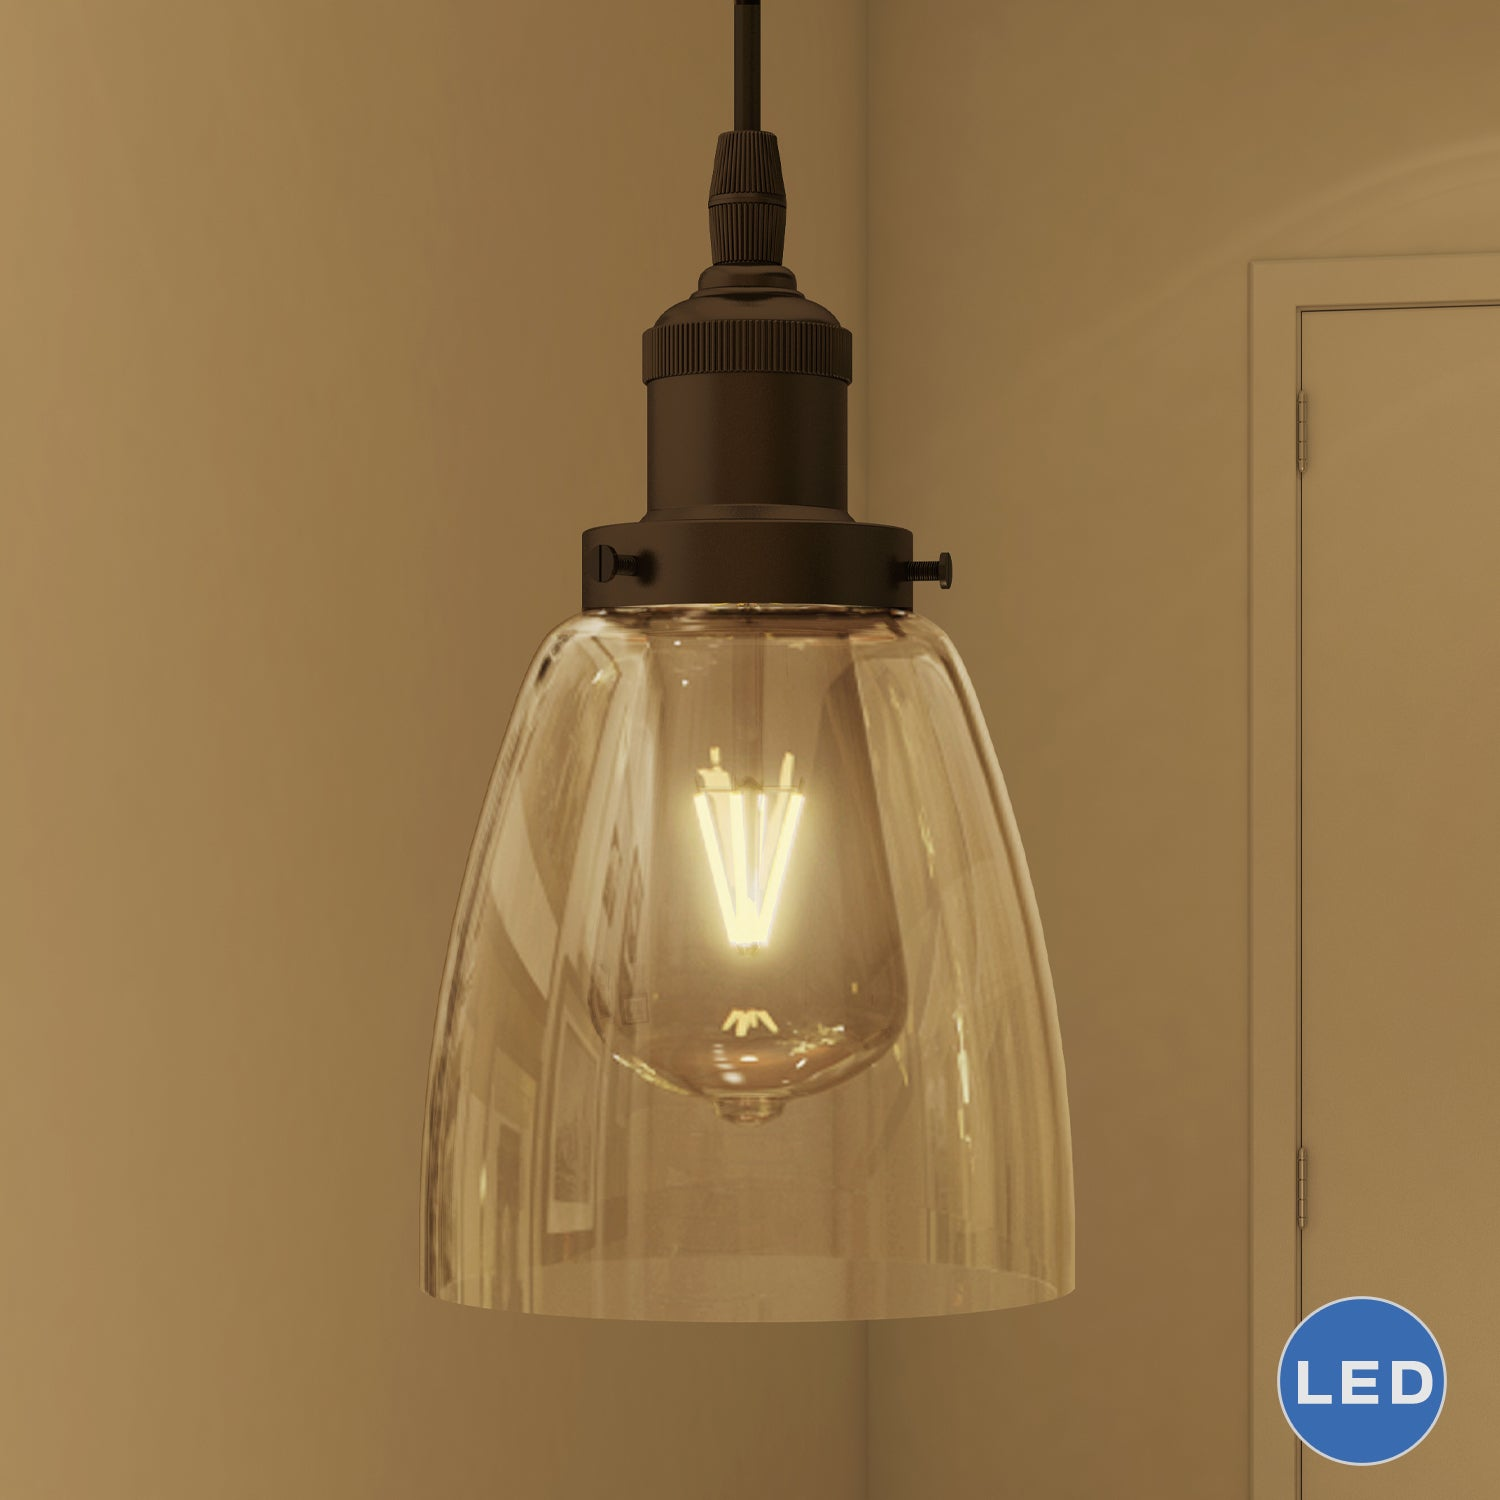 adjustable pendant lighting. Shop Vonn Lighting Delphinus Pendant Light Adjustable Hanging Industrial With Filament Bulb In Architectural Bronze - Free Shipping Today L